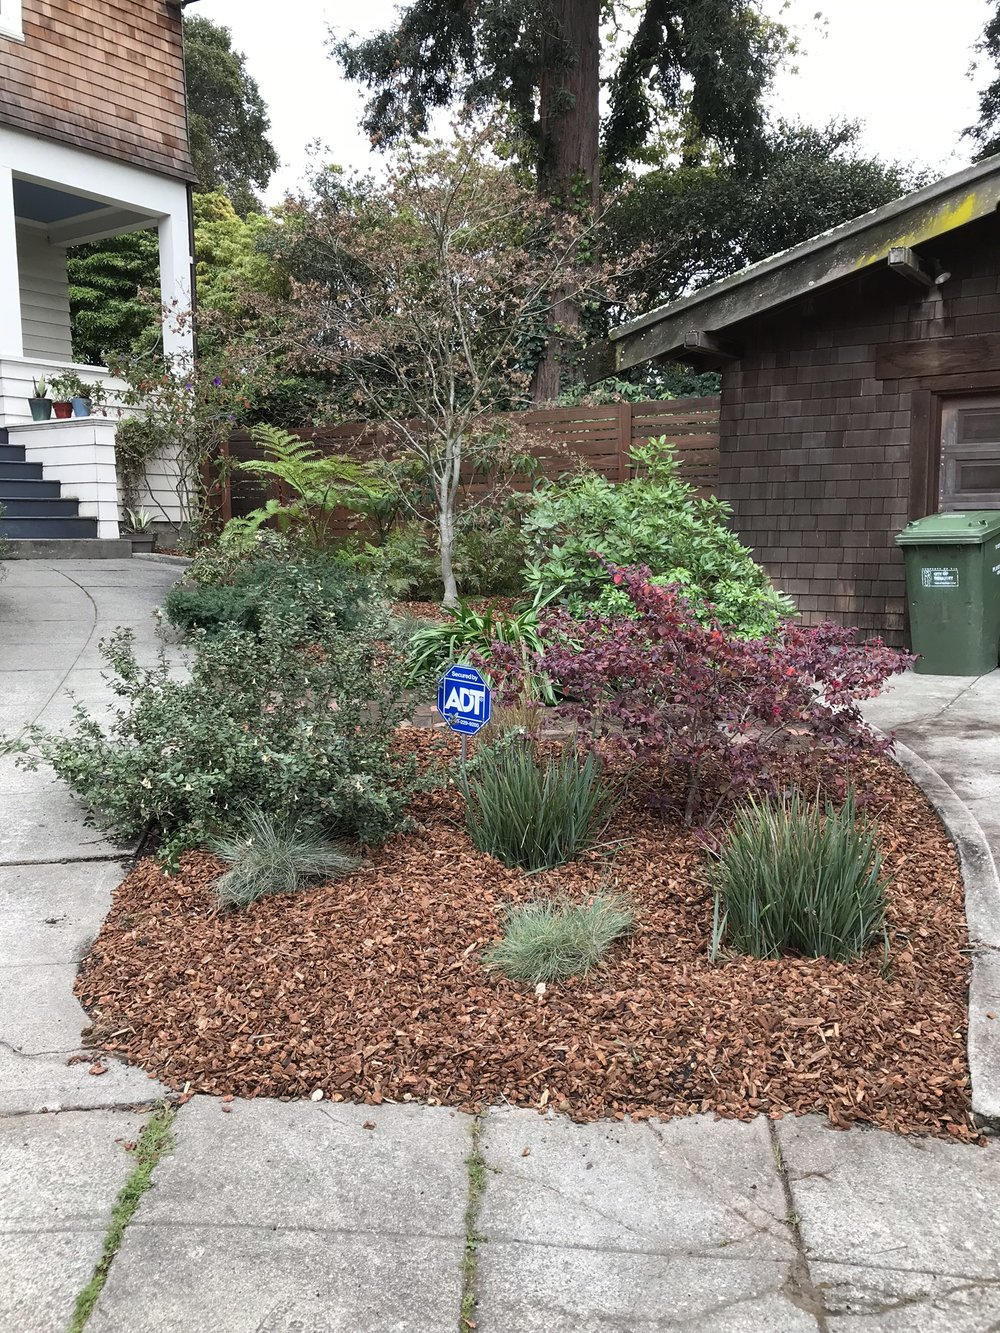 A yard covered in weeds transformed with a little attention. We removed the weeds and added compost and mulch. The existing plants really shine now that they are not stifled by overgrowth. The compost will enrich the soil to keep the plants happy and the mulch will help to retain moisture.